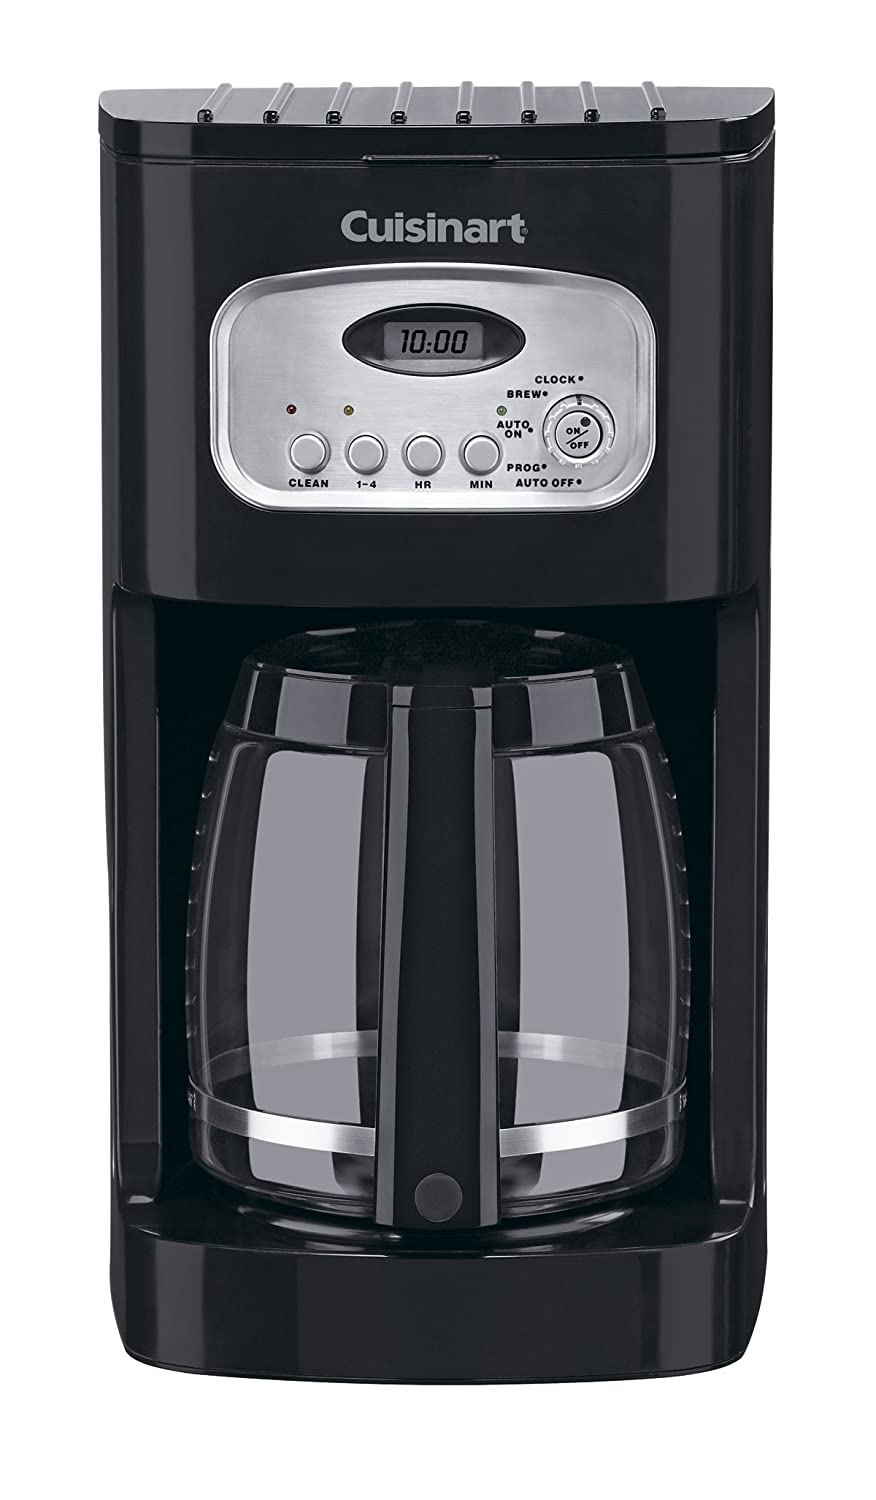 CuisinArt Coffee Maker DCC-1100BK: The Completely Automatic with the Capacity of 12 Cups